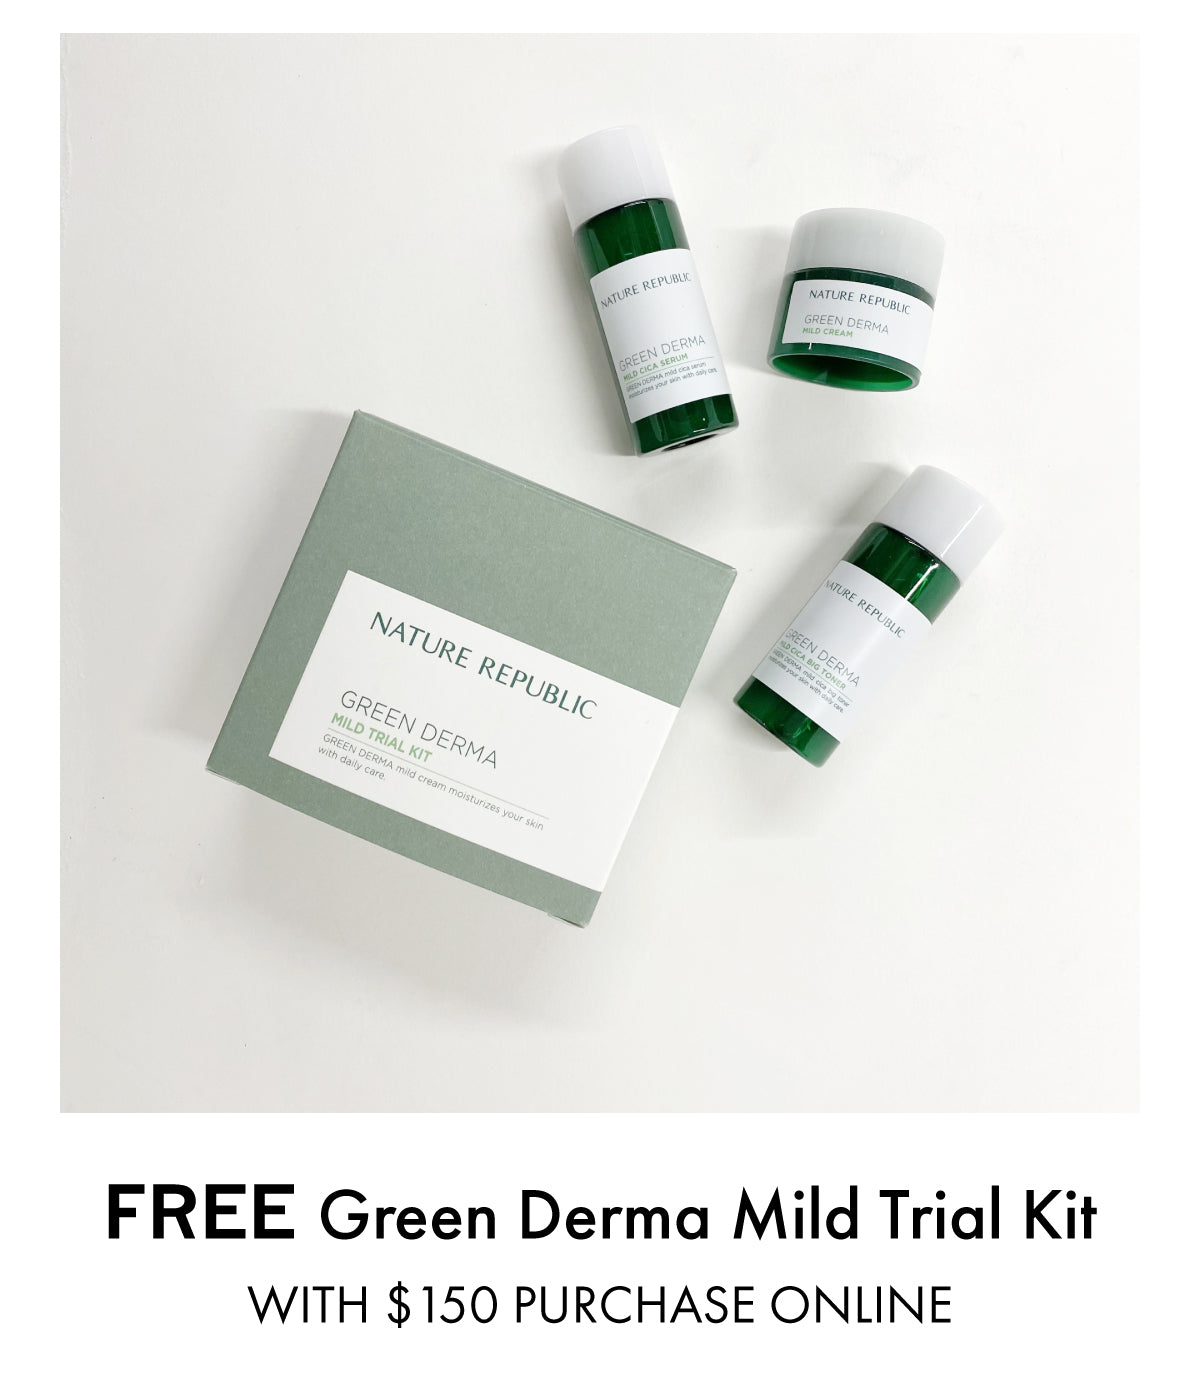 Free green derma mild trial kit with $150 purchase